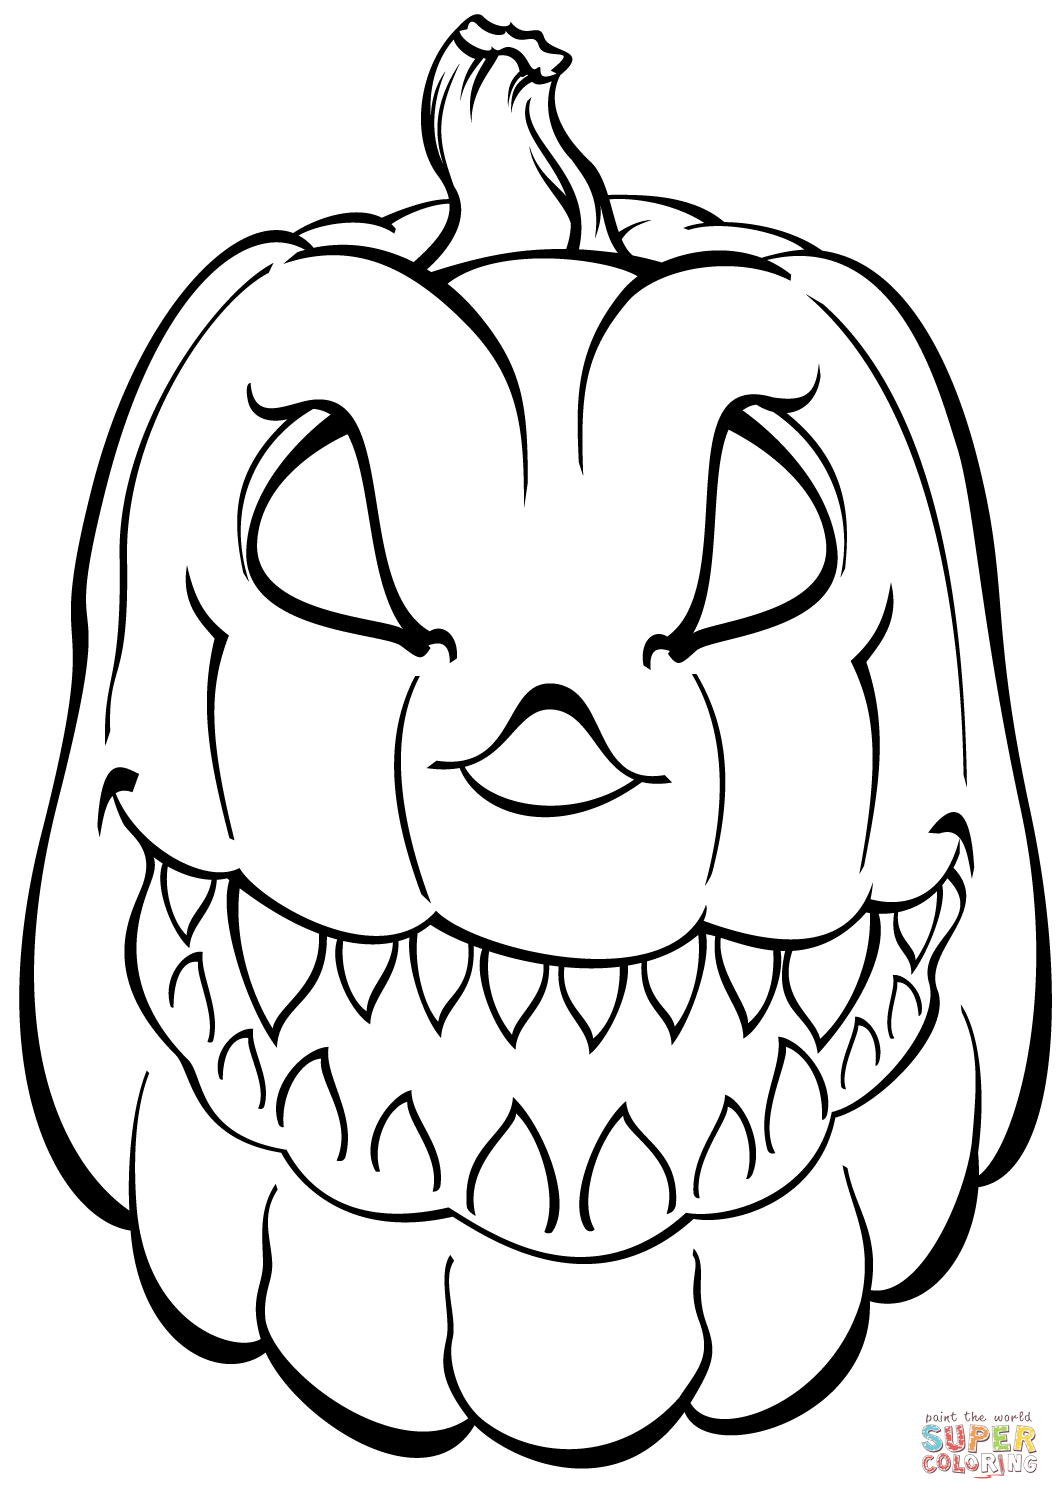 pumpkin colouring 20 free printable pumpkin coloring pages for adults colouring pumpkin